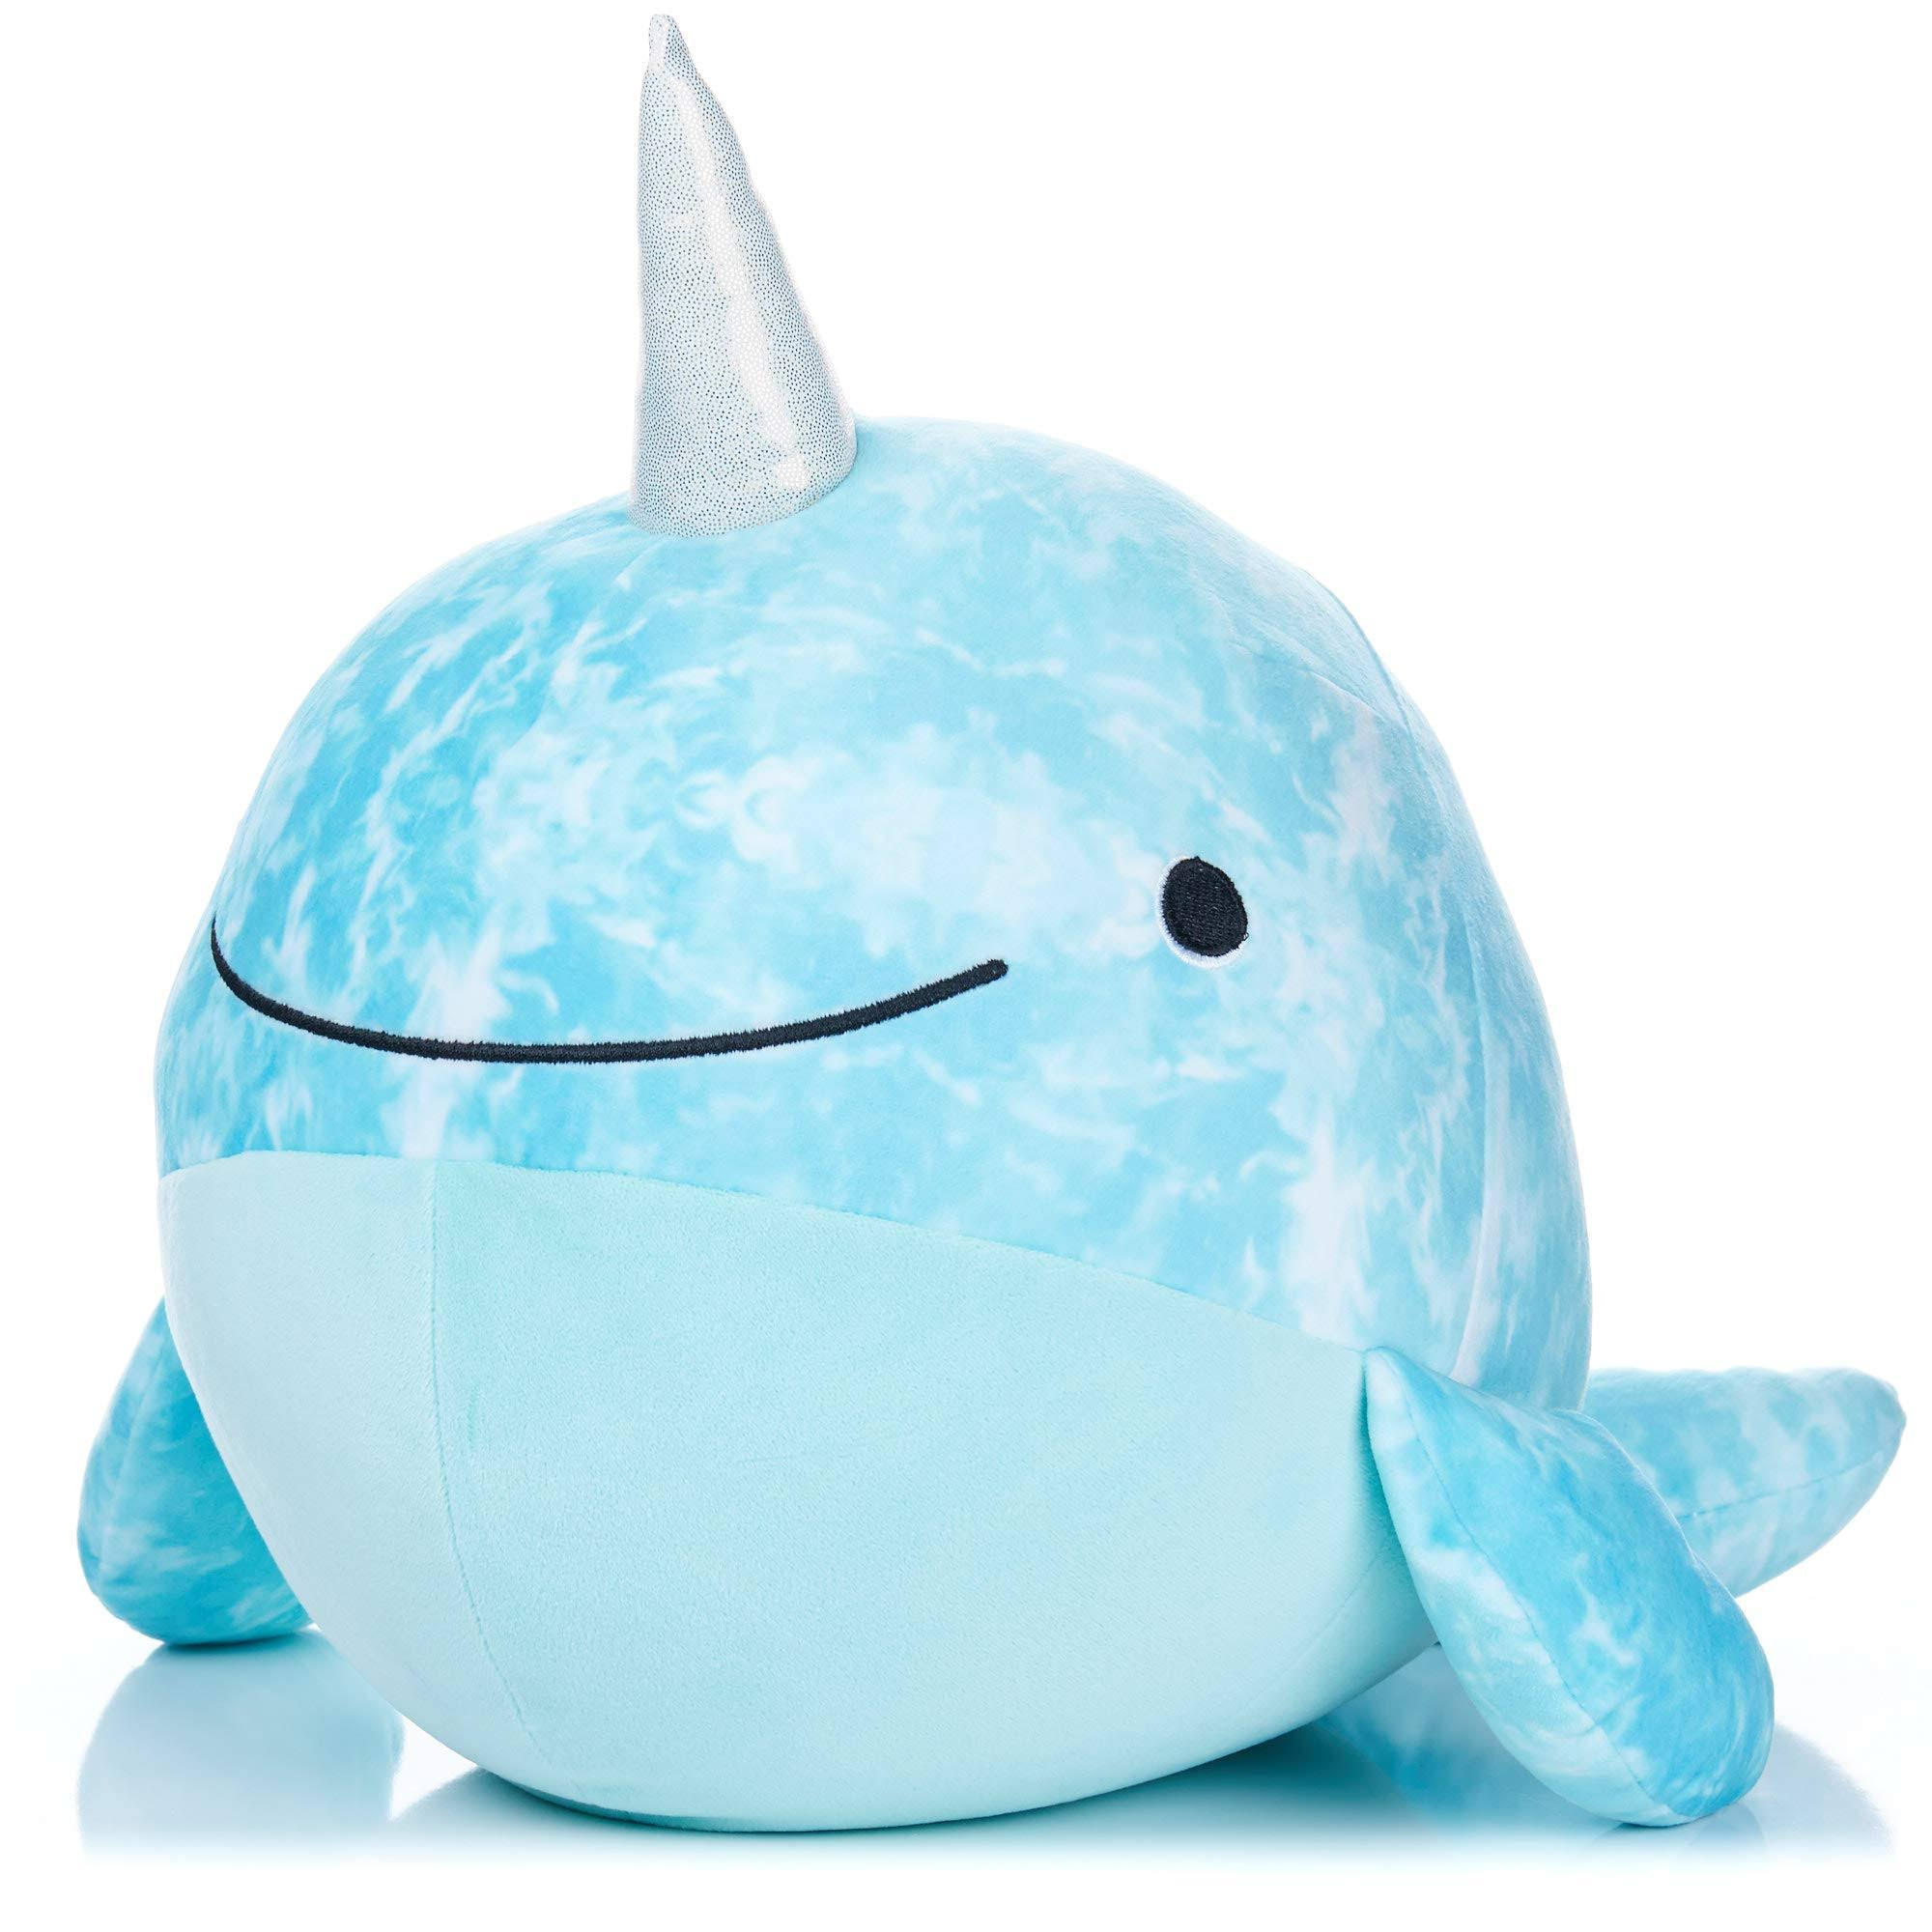 Kids Preferred Cuddle Pal Round Huggable Indigo The Narwhal